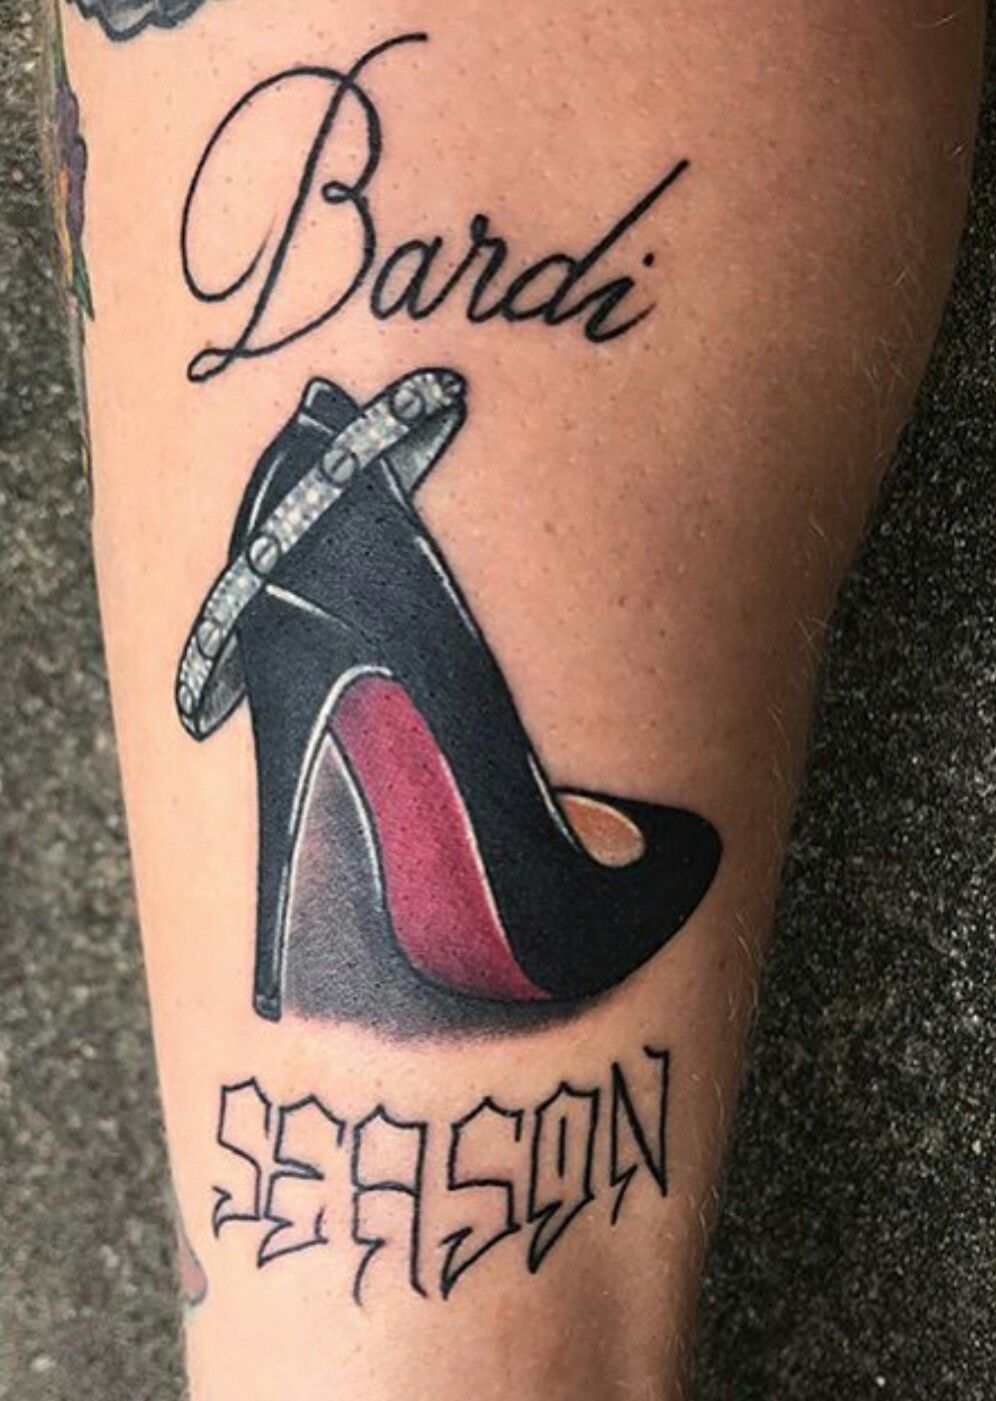 Cardi B Tattoos Arm: Pin By Enticing On Cardi B Offset And Hennessy